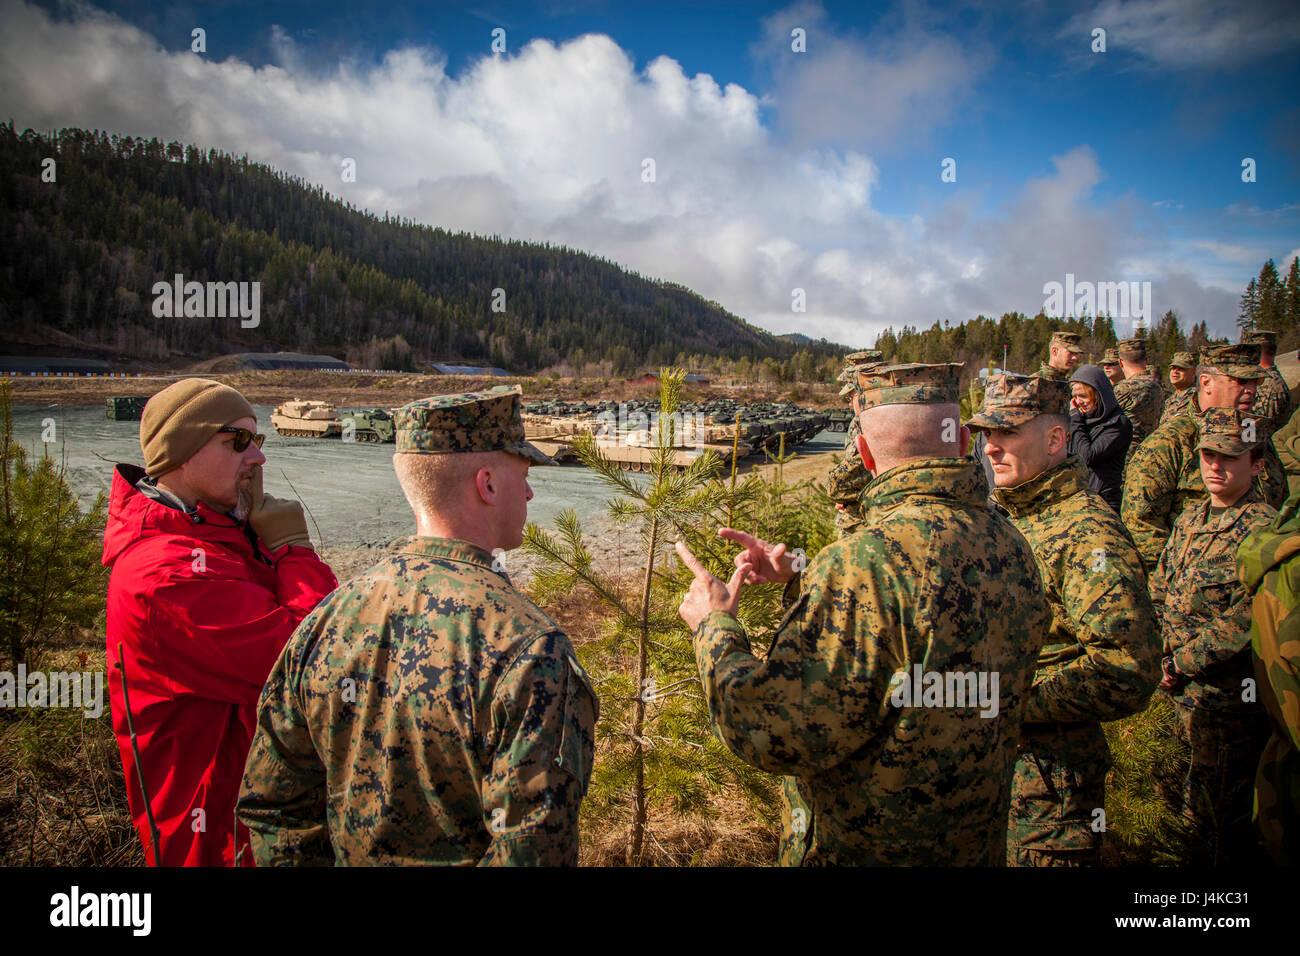 Lt. Gen. John Wissler, center, commander of U.S. Marine Corps Forces Command, speaks with Marines while overlooking Stock Photo